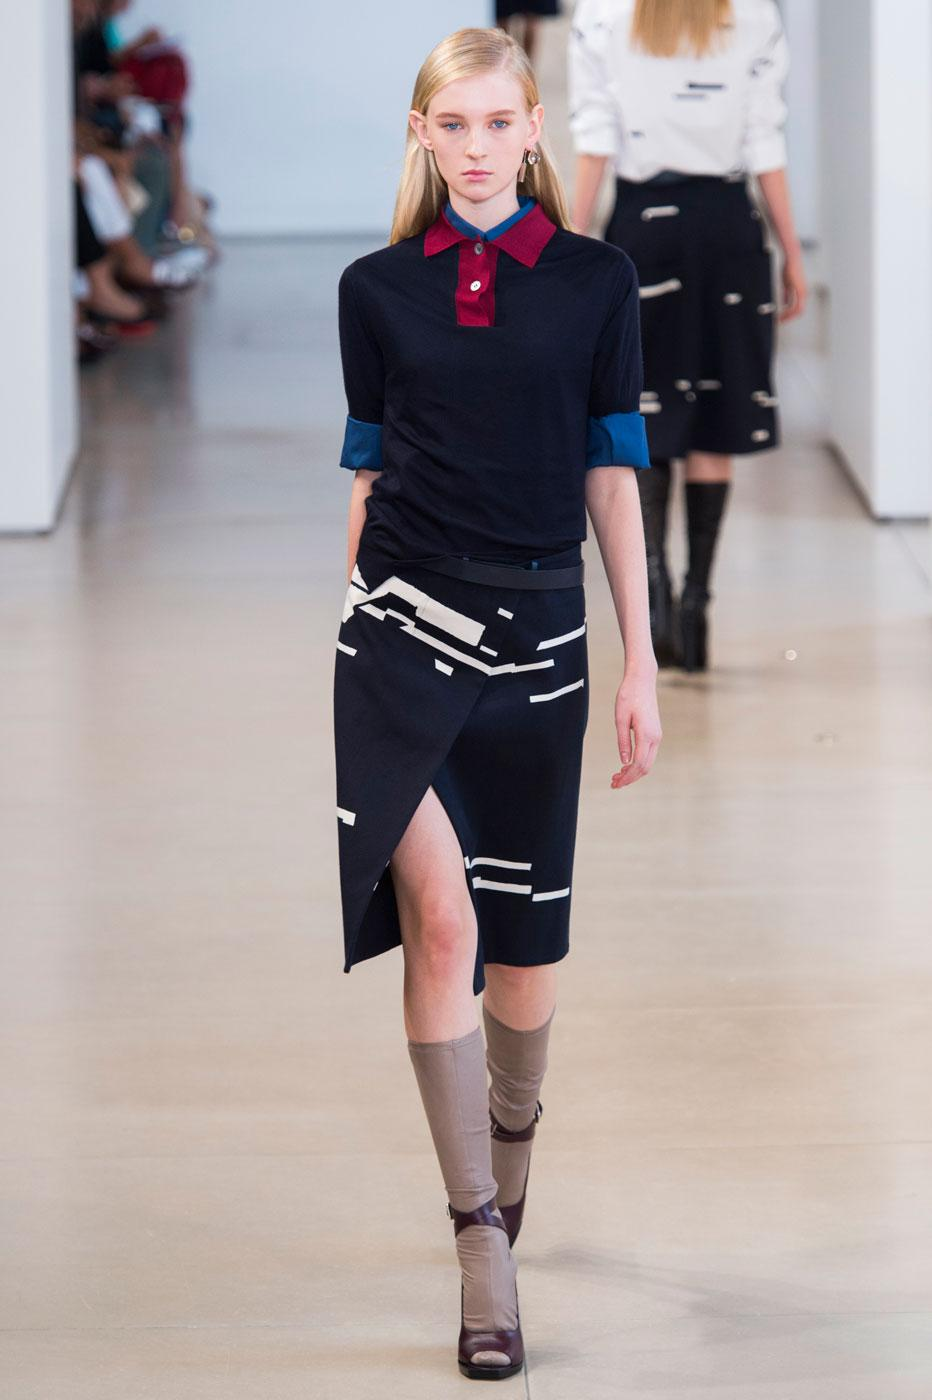 Rodolfo Paglialunga presents a wearable debut collection for Jil Sander in Milan http://t.co/q1k30n3qCM #SS15 #MFW http://t.co/9iHAdD7lkt